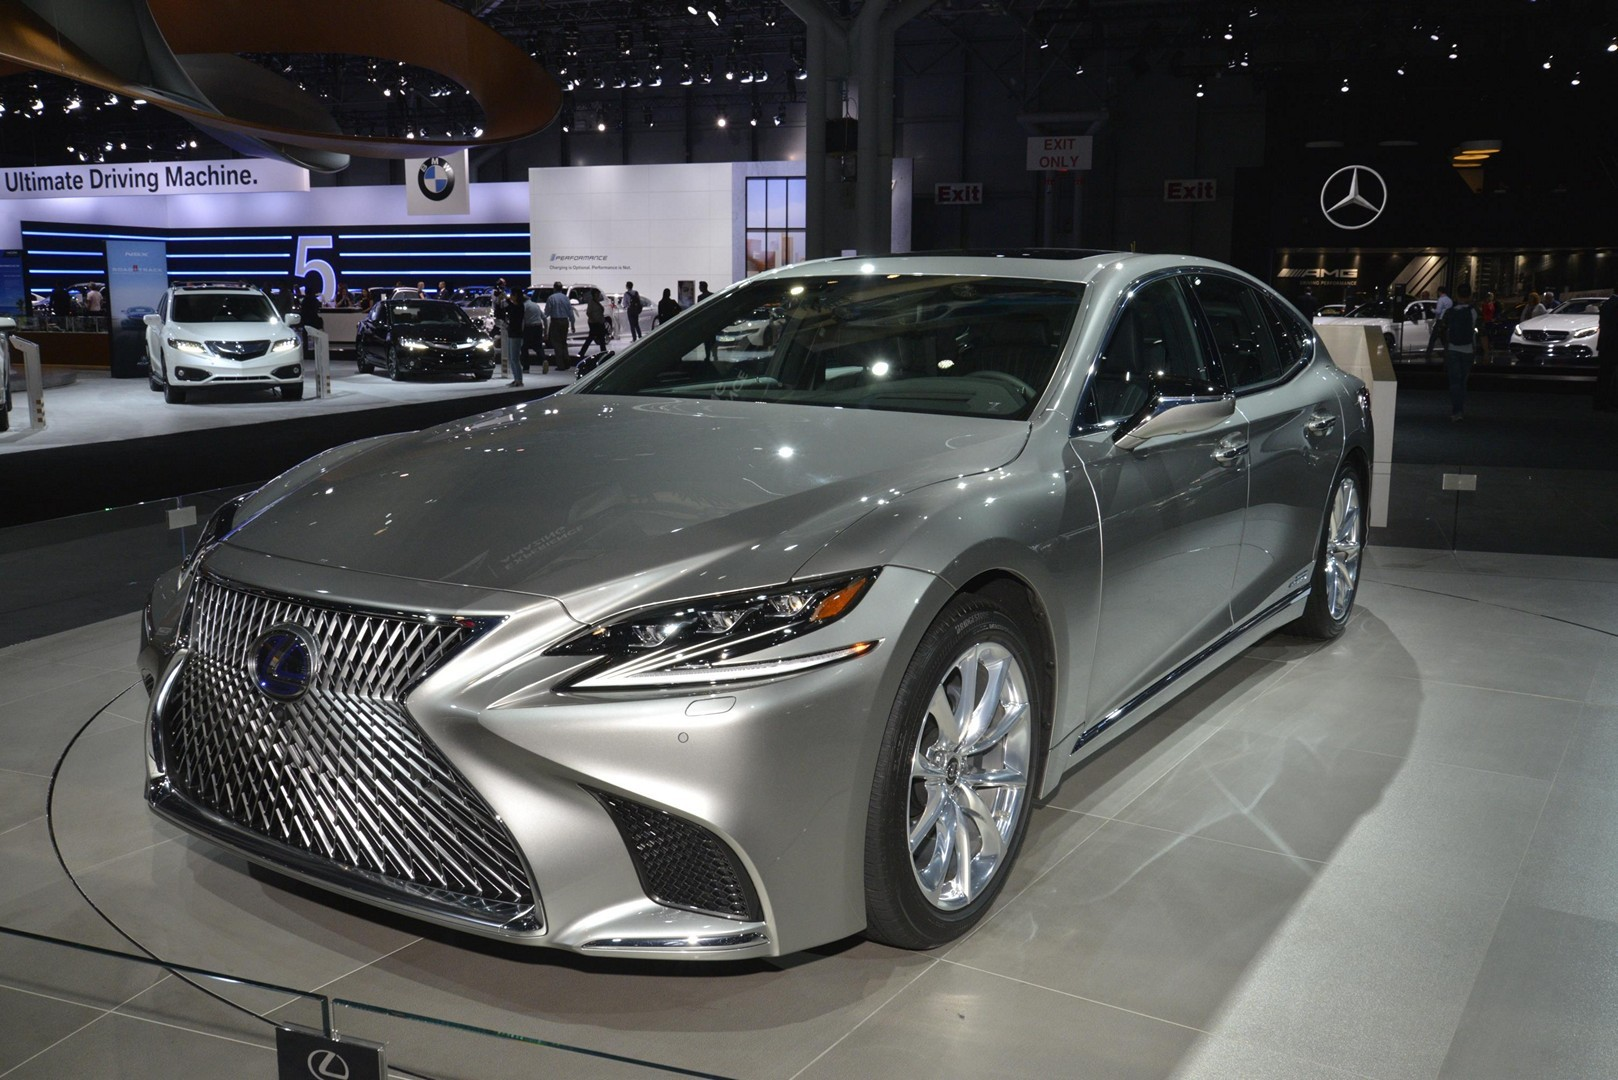 2018 lexus ls f sport joins ls 500h in new york autoevolution. Black Bedroom Furniture Sets. Home Design Ideas